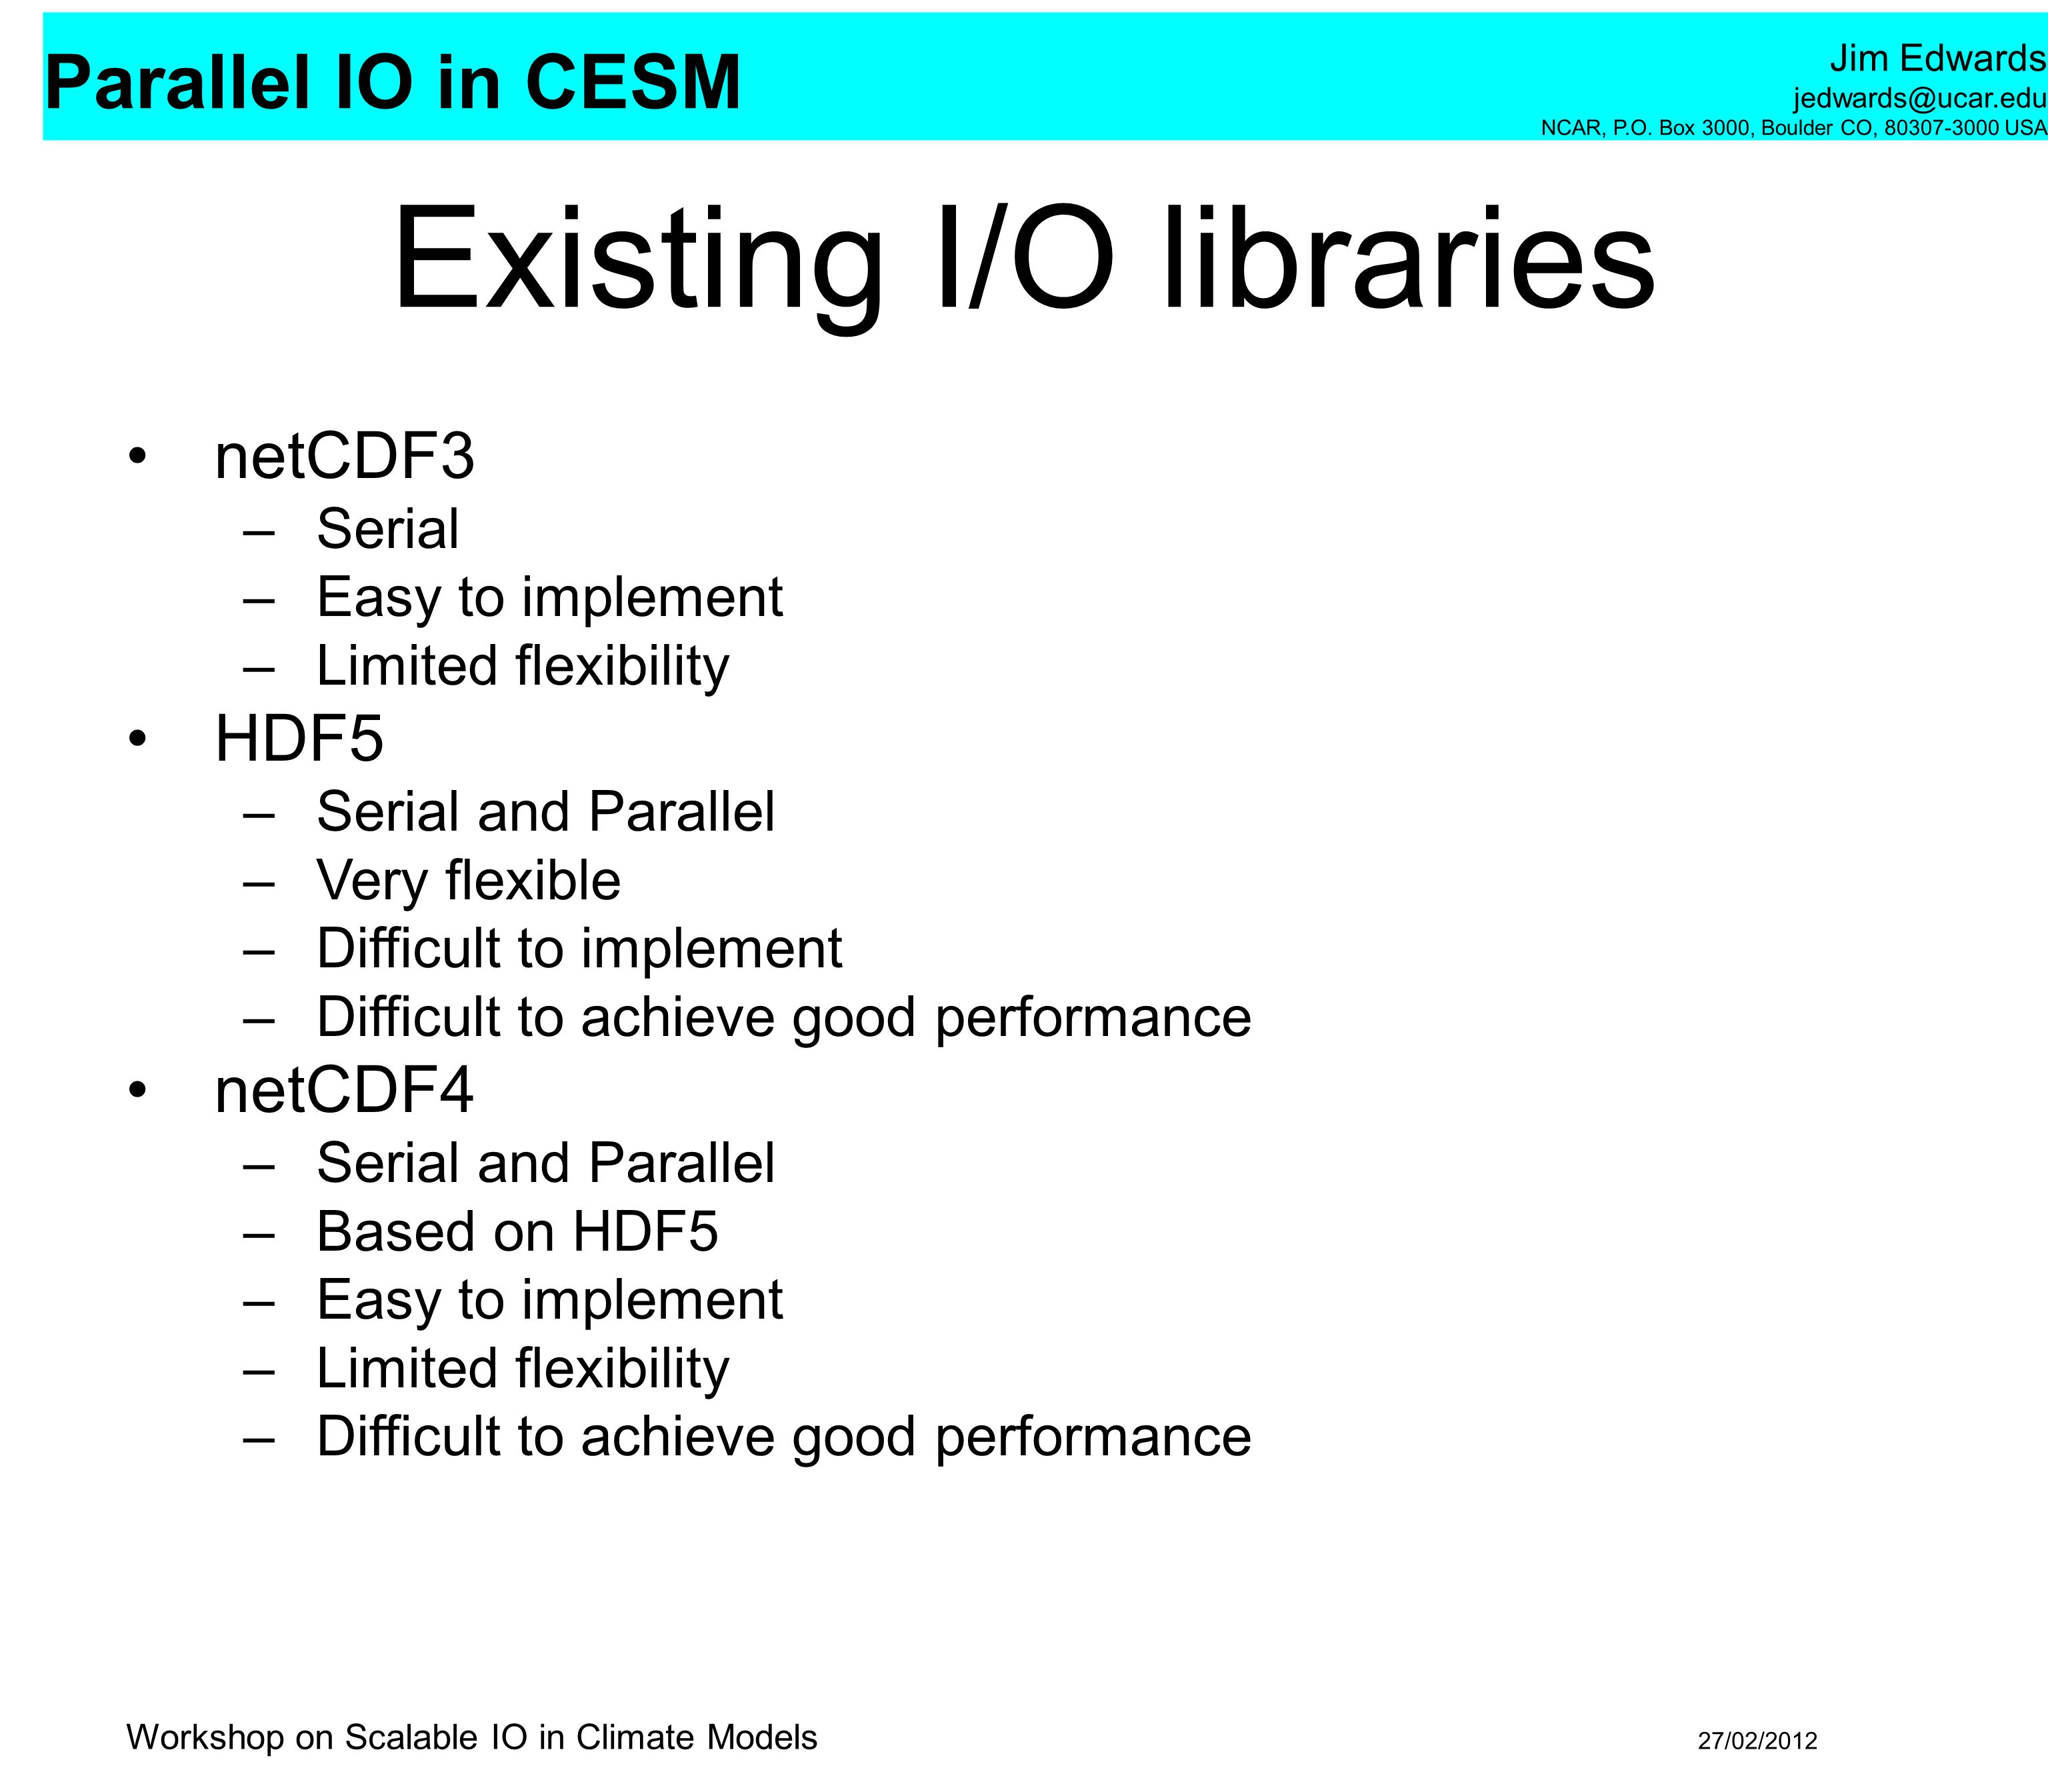 Existing I/O libraries